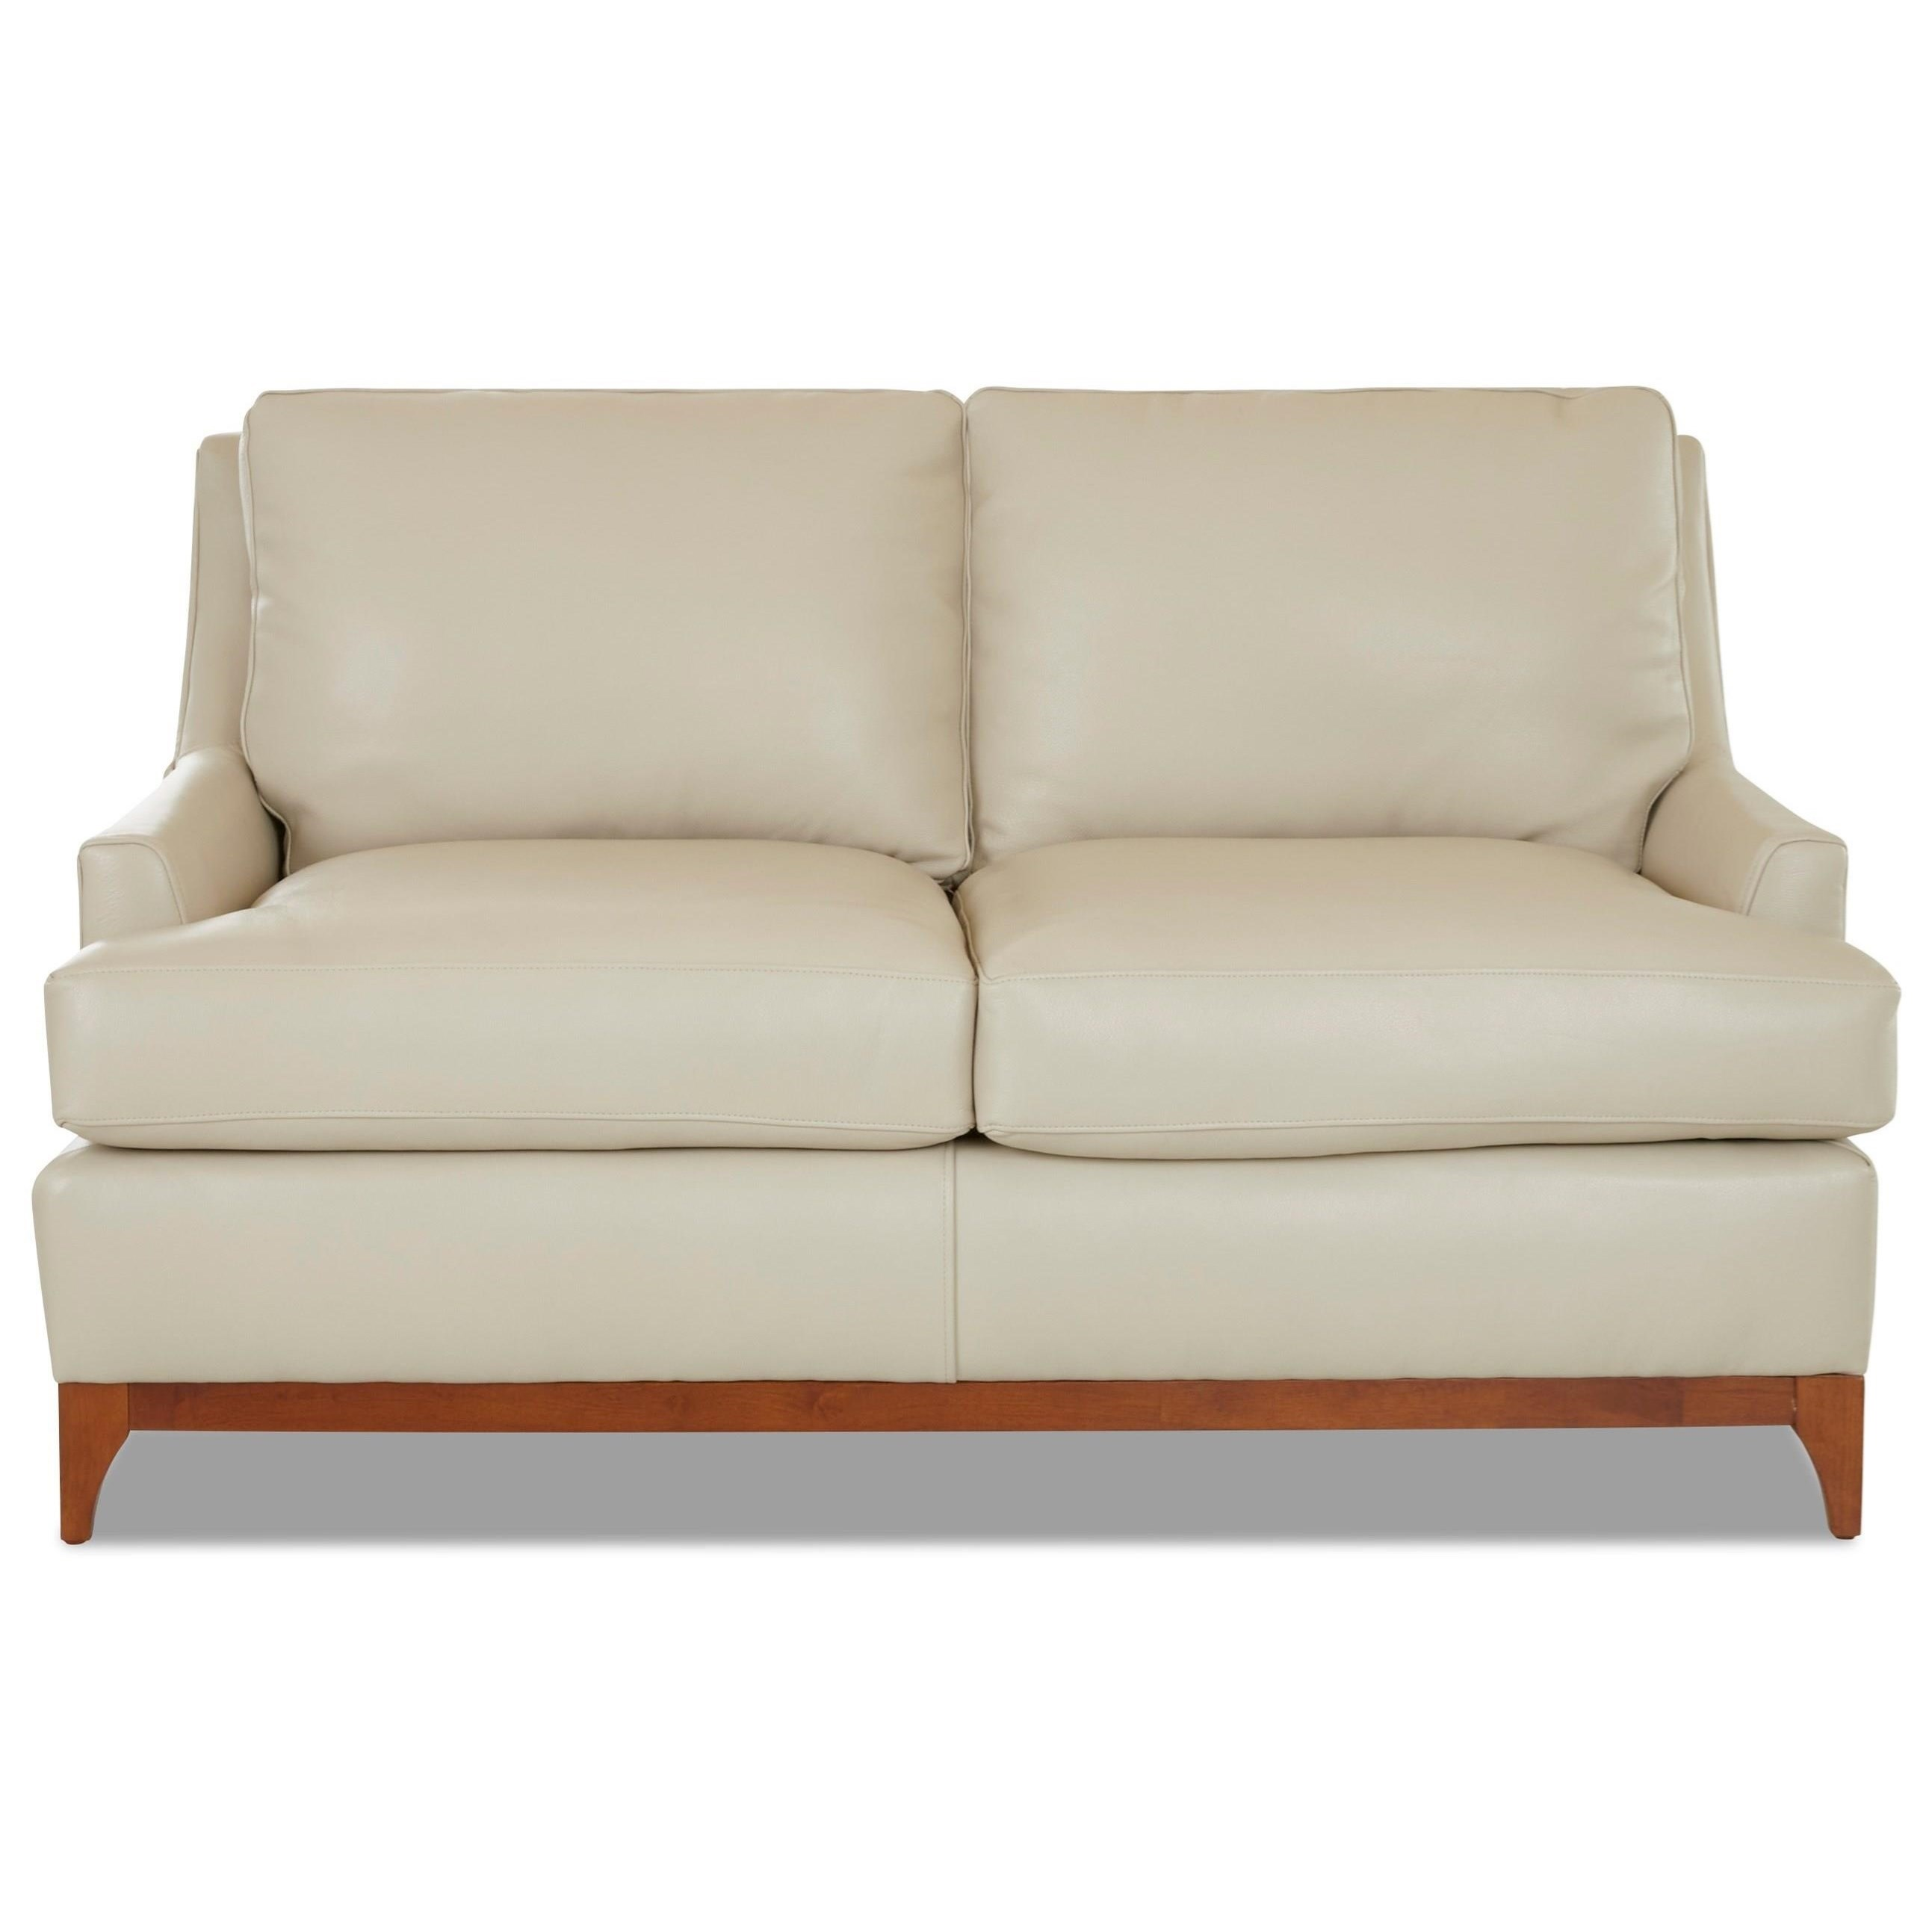 Luca Loveseat by Klaussner at Northeast Factory Direct